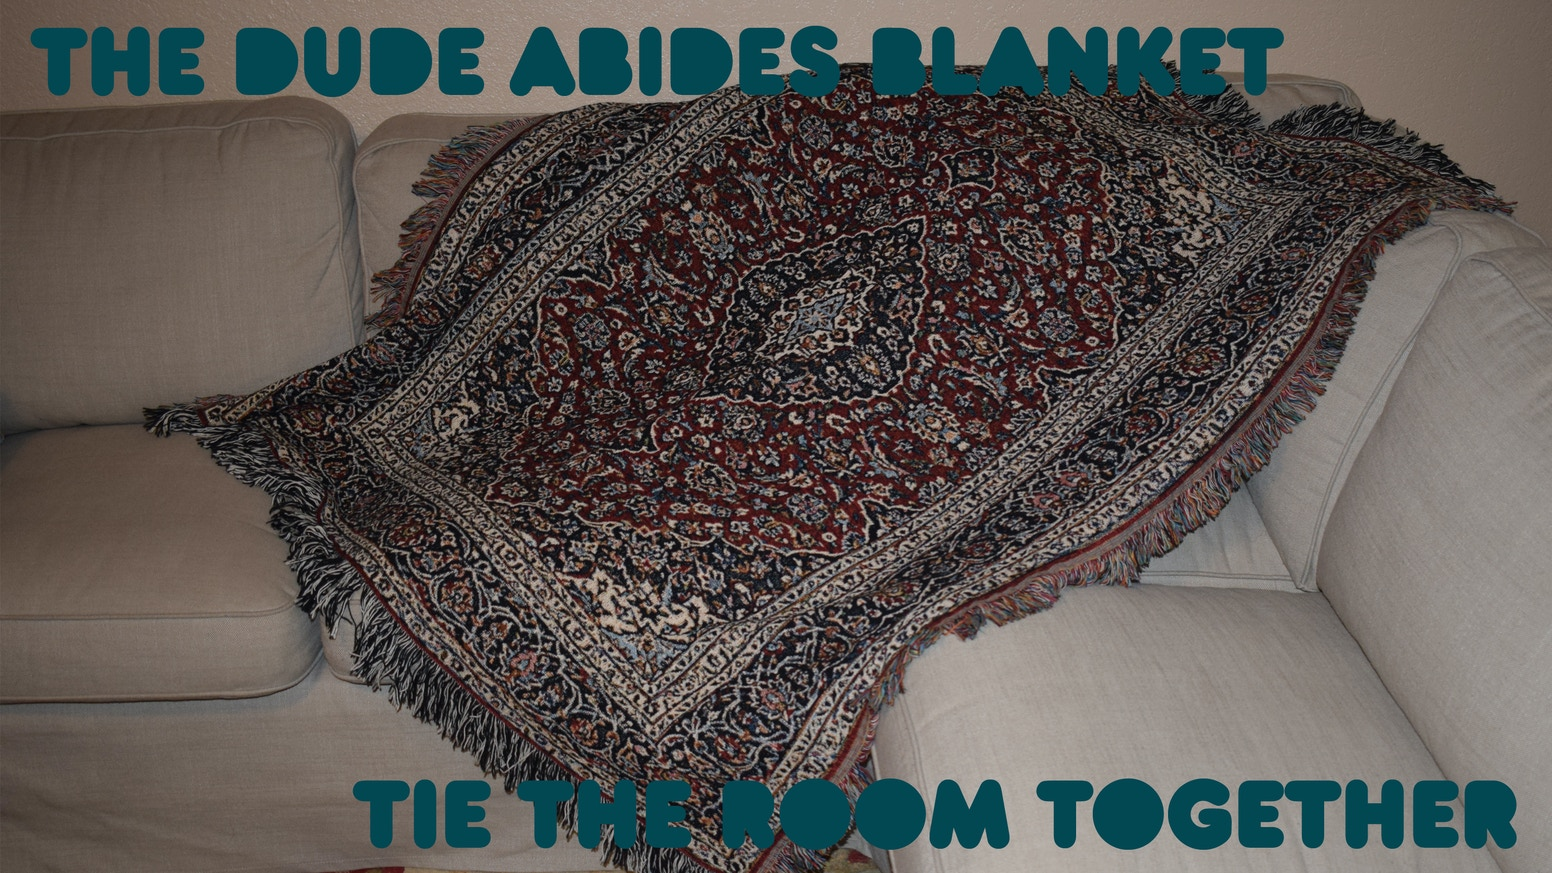 39ffe9eaa9b4 Make 100  The Dude Abides Blanket  Tie the Room Together by Michael ...